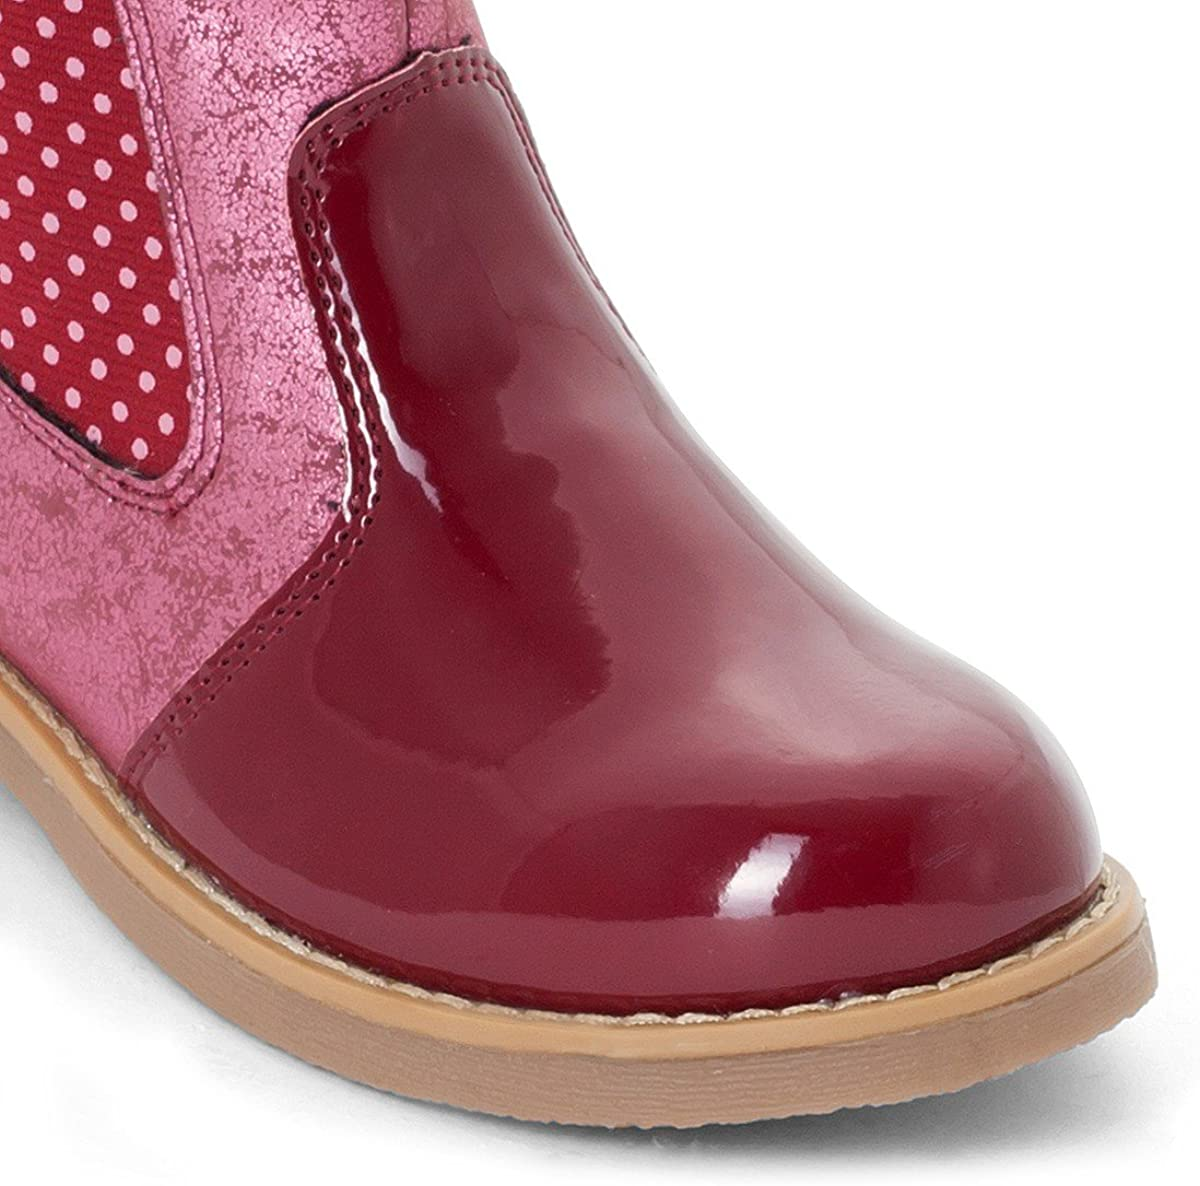 La Redoute Collections Big Girls Leather Ankle Boots Red Size 26